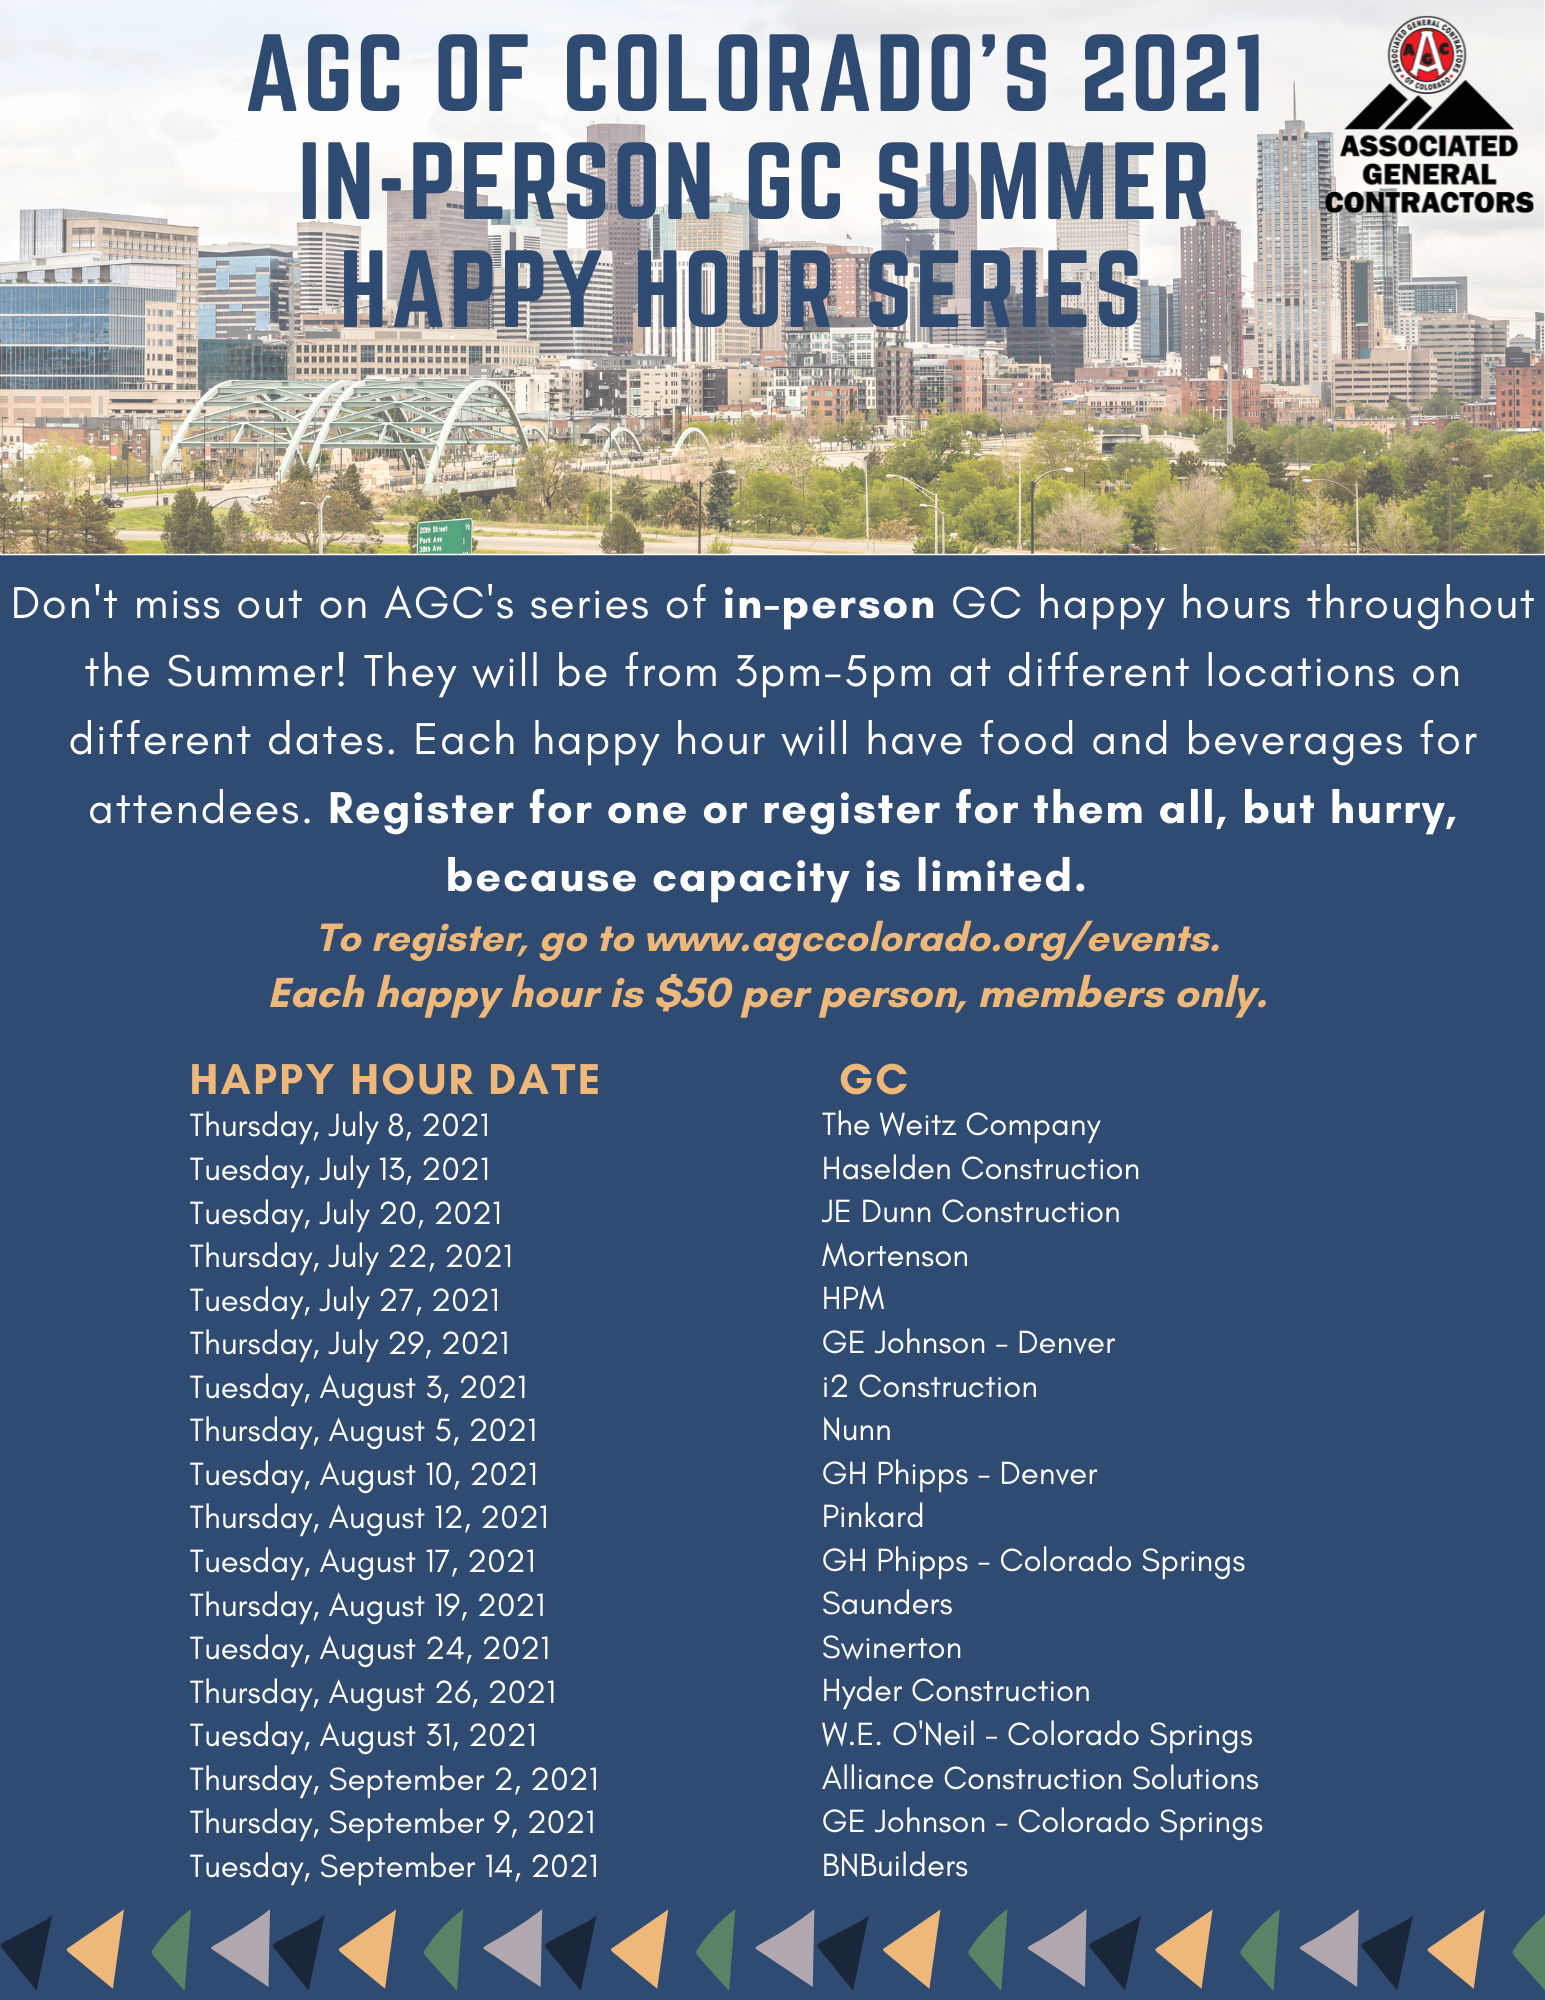 AGC-2021-In-Person-GC-Summer-Happy-Hour-Series_V4.png